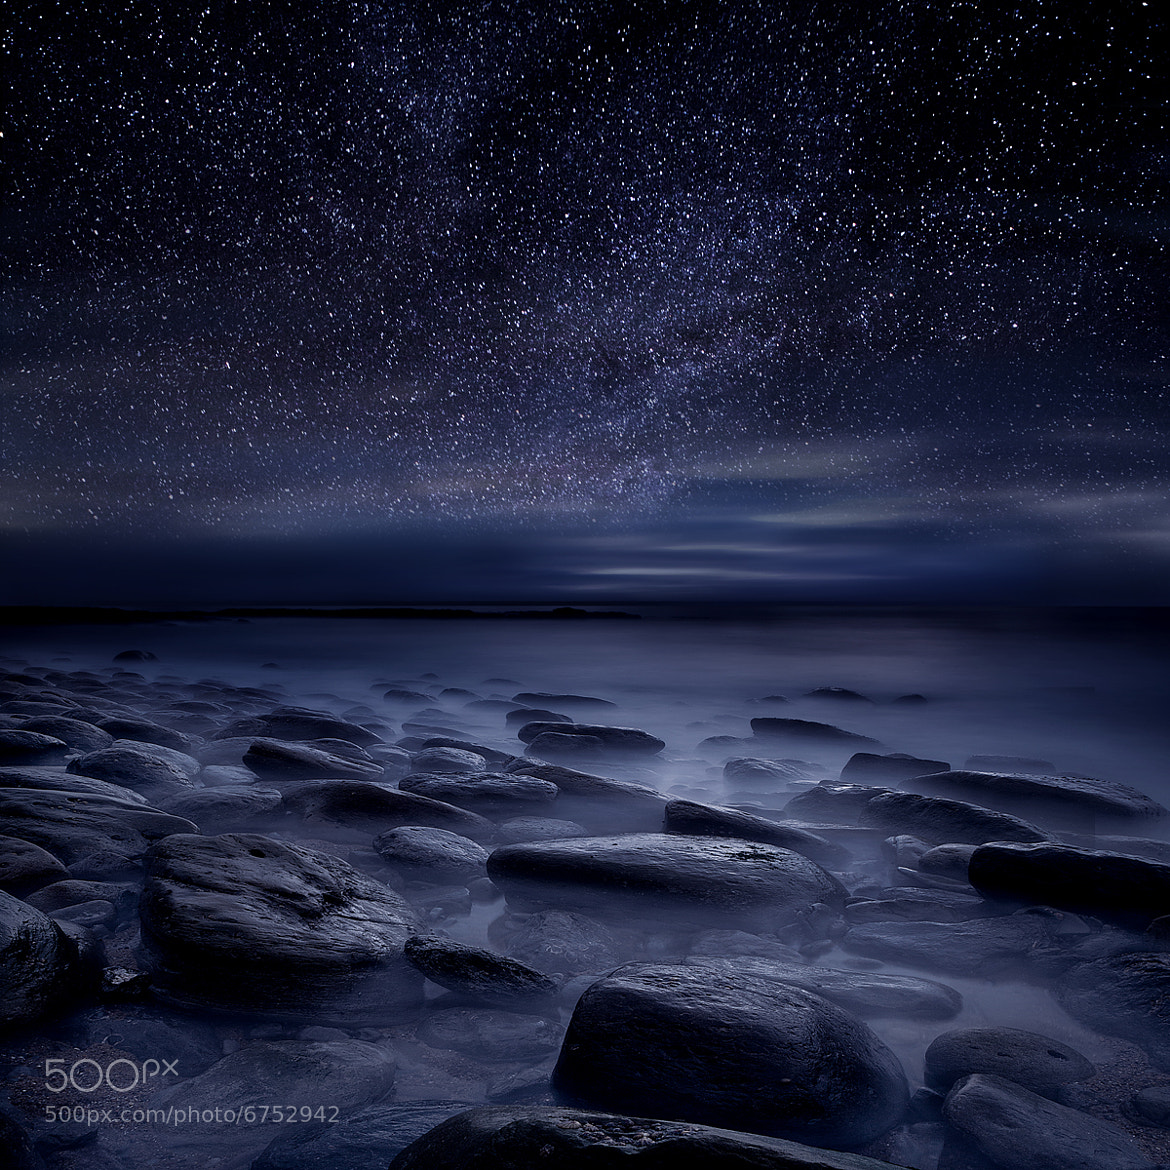 Photograph Echoes of the unknown by Jorge Maia on 500px